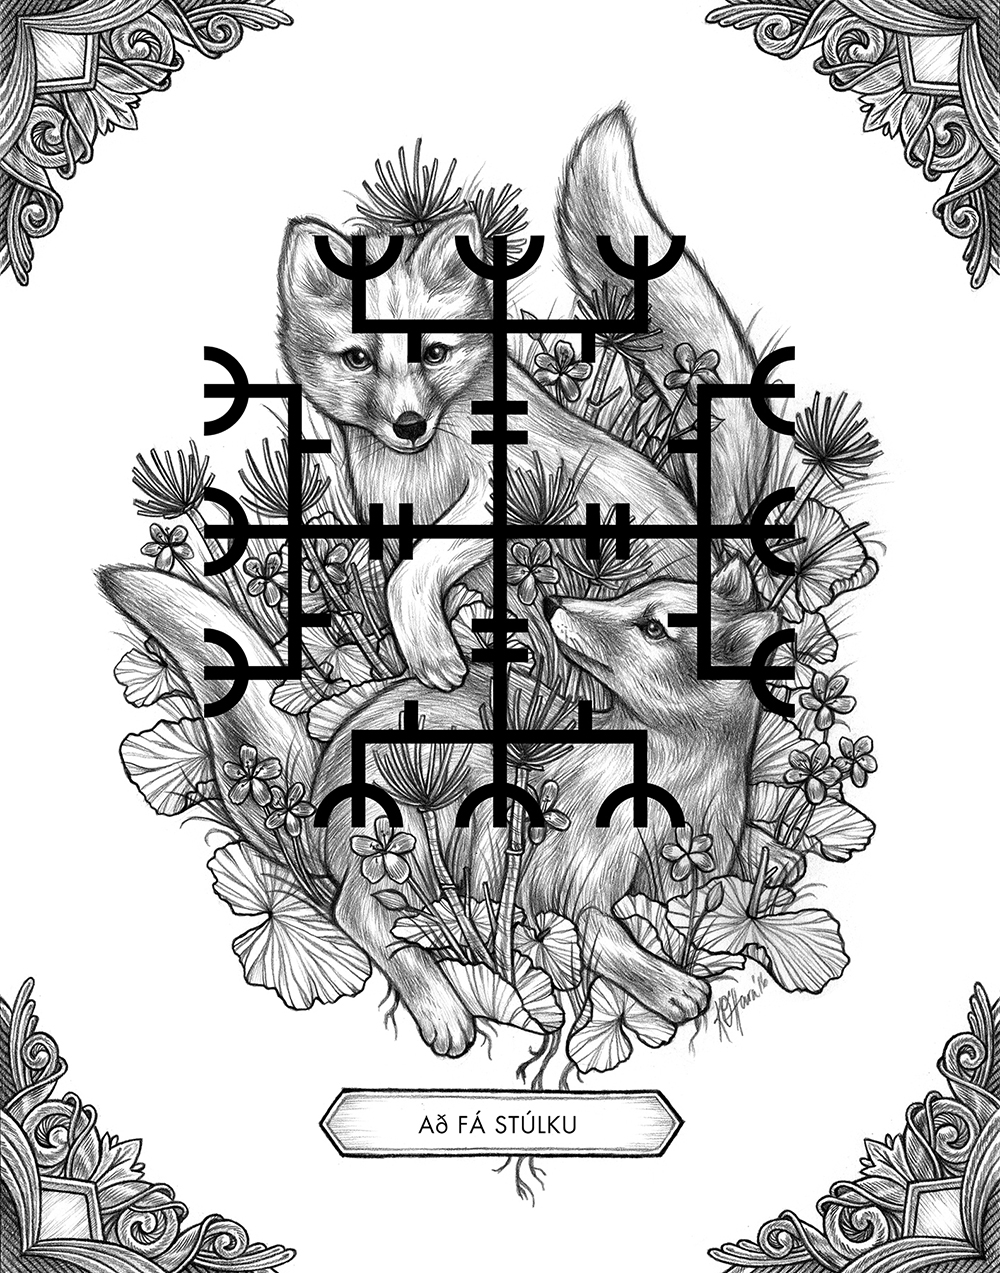 """Vegvísir - To find your way in bad weather"" by Kate O'Hara"